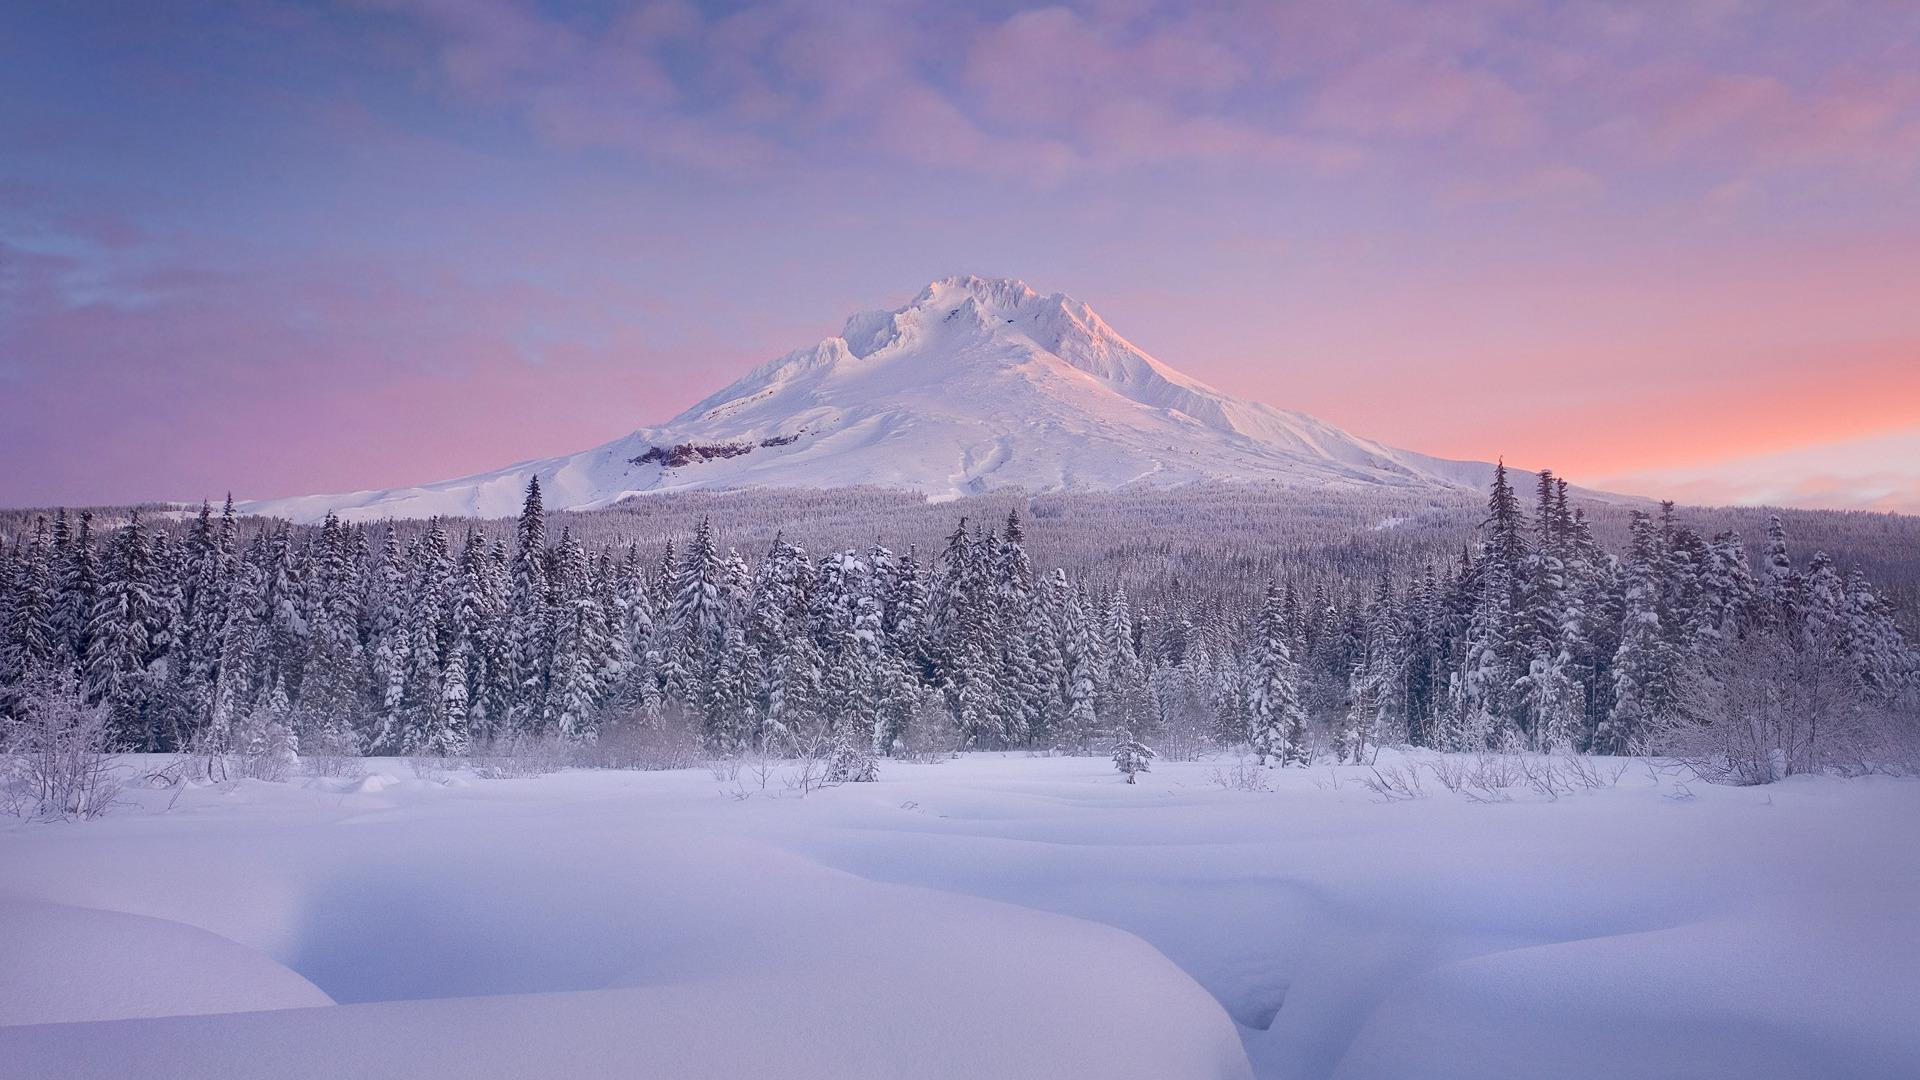 Mt. Hood, Oregon. : wallpapers